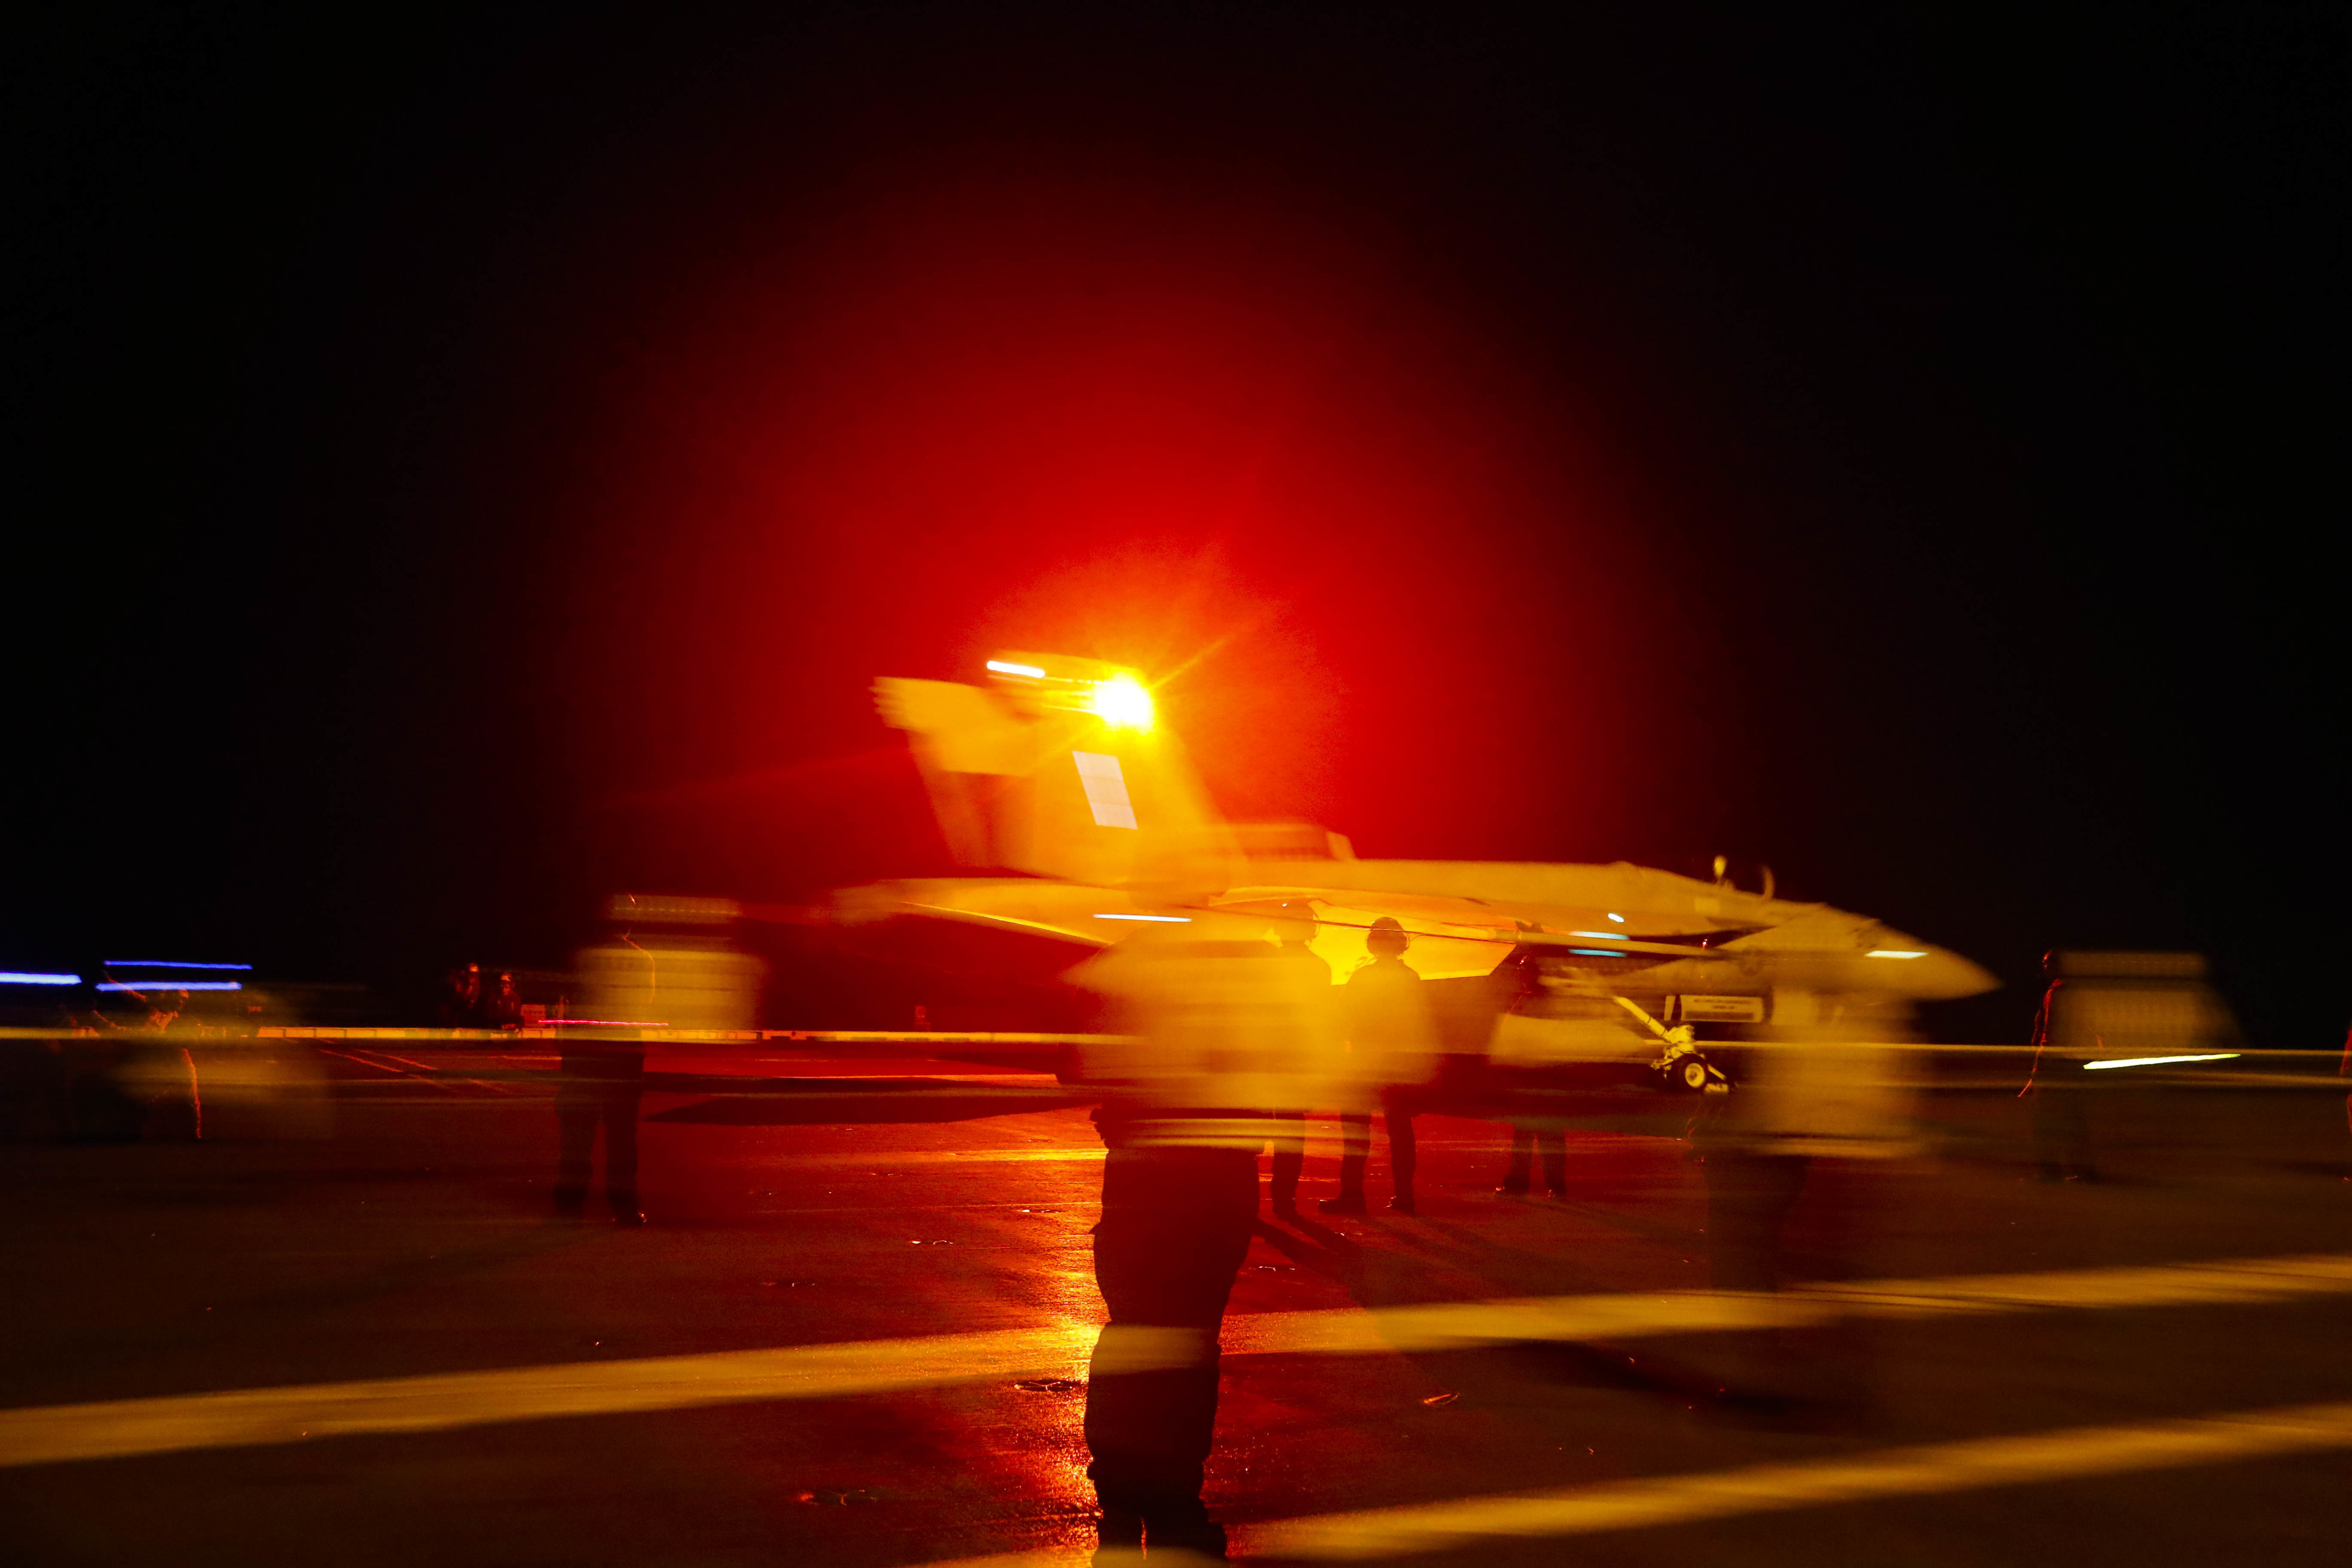 An F/A-18E Super Hornet aircraft launches from the flight deck the Nimitz-class aircraft carrier USS Abraham Lincoln in the Persian Gulf on May 10, 2019. The  aircraft carrier strike group is being deployed to the Persian Gulf to counter an alleged but still-unspecified threat from Iran.